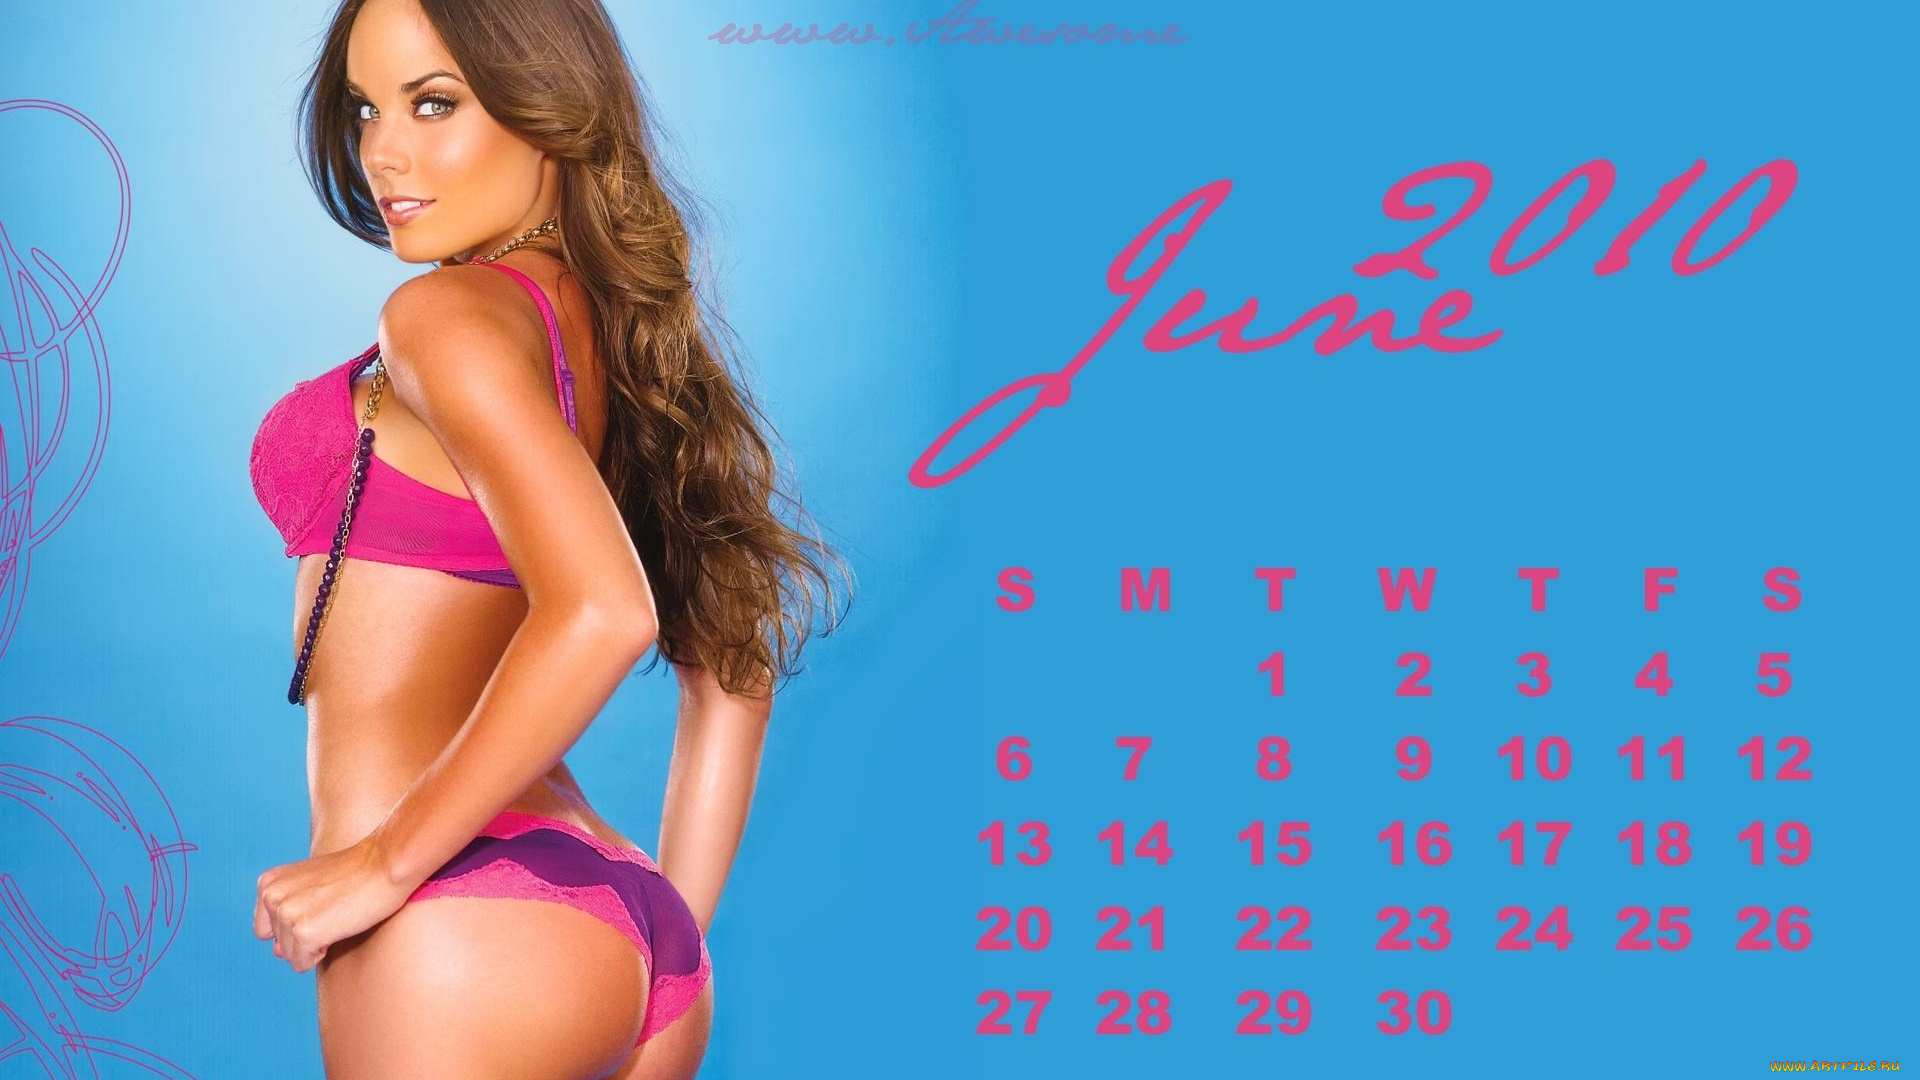 Sexy Calendar Girl Wallpapers For Free Download About